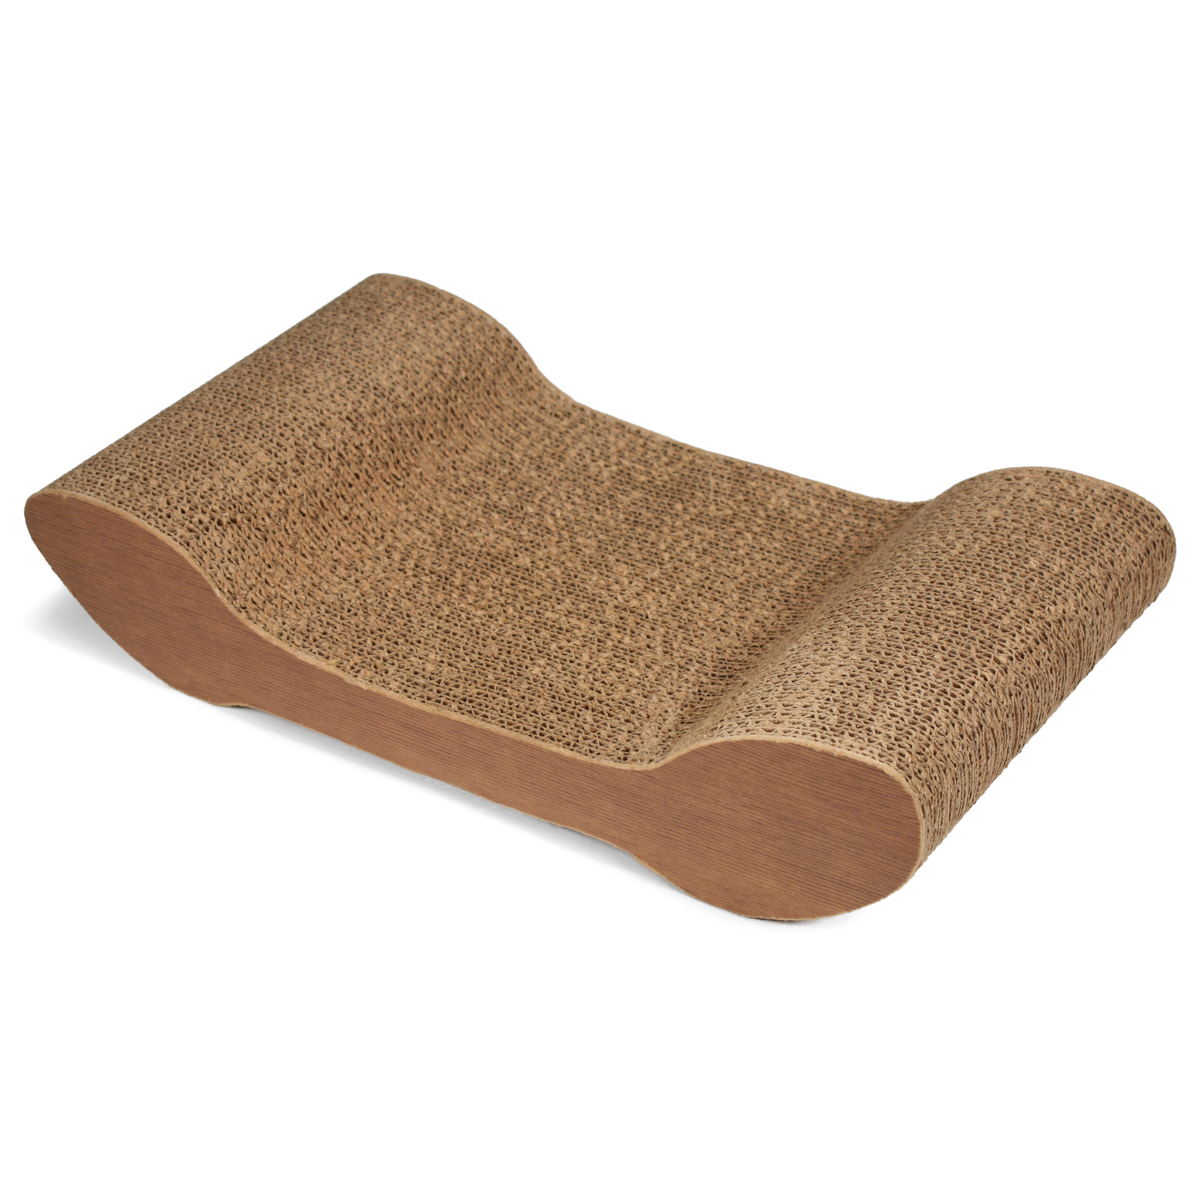 SmartyKat CatChaise Corrugated Cat Scratcher-9.25 Inch X 17.125 In